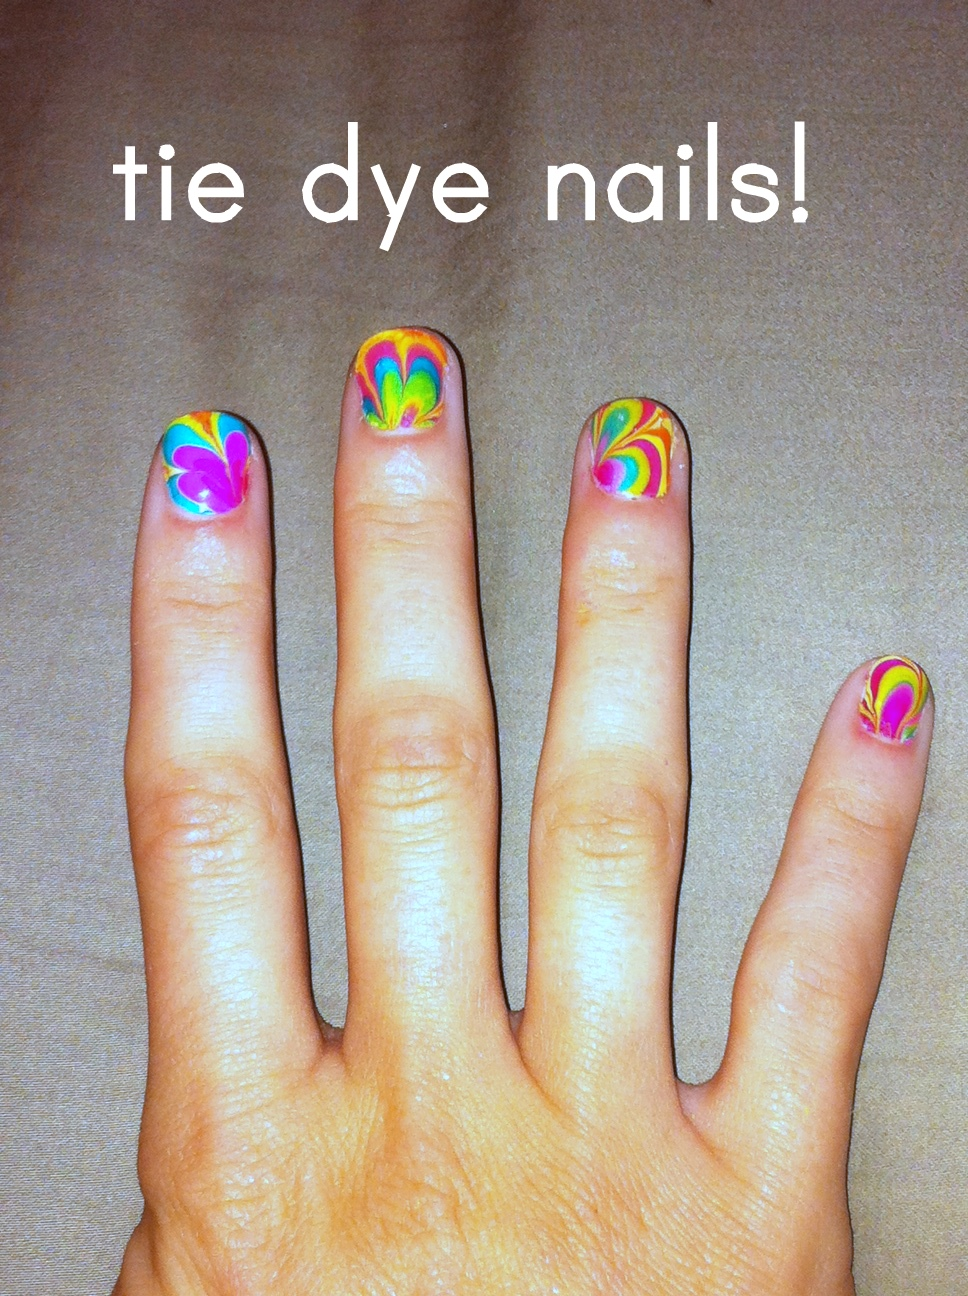 C R A F T 82 Tie Dye Nails Nail Design Marble Nails Div Div Class Fileinfo 968 X 1296 Jpeg 563 Kb Div Div Div Div Class Item A Class Thumb Target Blank Href Http Thecraftingchicks Com Wp Content Uploads 2011 05 Img 0736ed2 Jpg H Id Images 5112 1 Div Class Cico Style Width 230px Height 170px Img Height 170 Width 230 Src Http Tse2 Mm Bing Net Th Id Oip Z1crewnowhfvkra6jjrthahae8 Amp W 230 Amp H 170 Amp Rs 1 Amp Pcl Dddddd Amp O 5 Amp Pid 1 1 Alt Div A Div Class Meta A Class Tit Target Blank Href Http Thecraftingchicks Com 2011 05 Summer Activity Jars And Grab Bags Html H Id Images 5110 1 Thecraftingchicks Com A Div Class Des Summer Activity Jars And Grab Bags Free Printables The